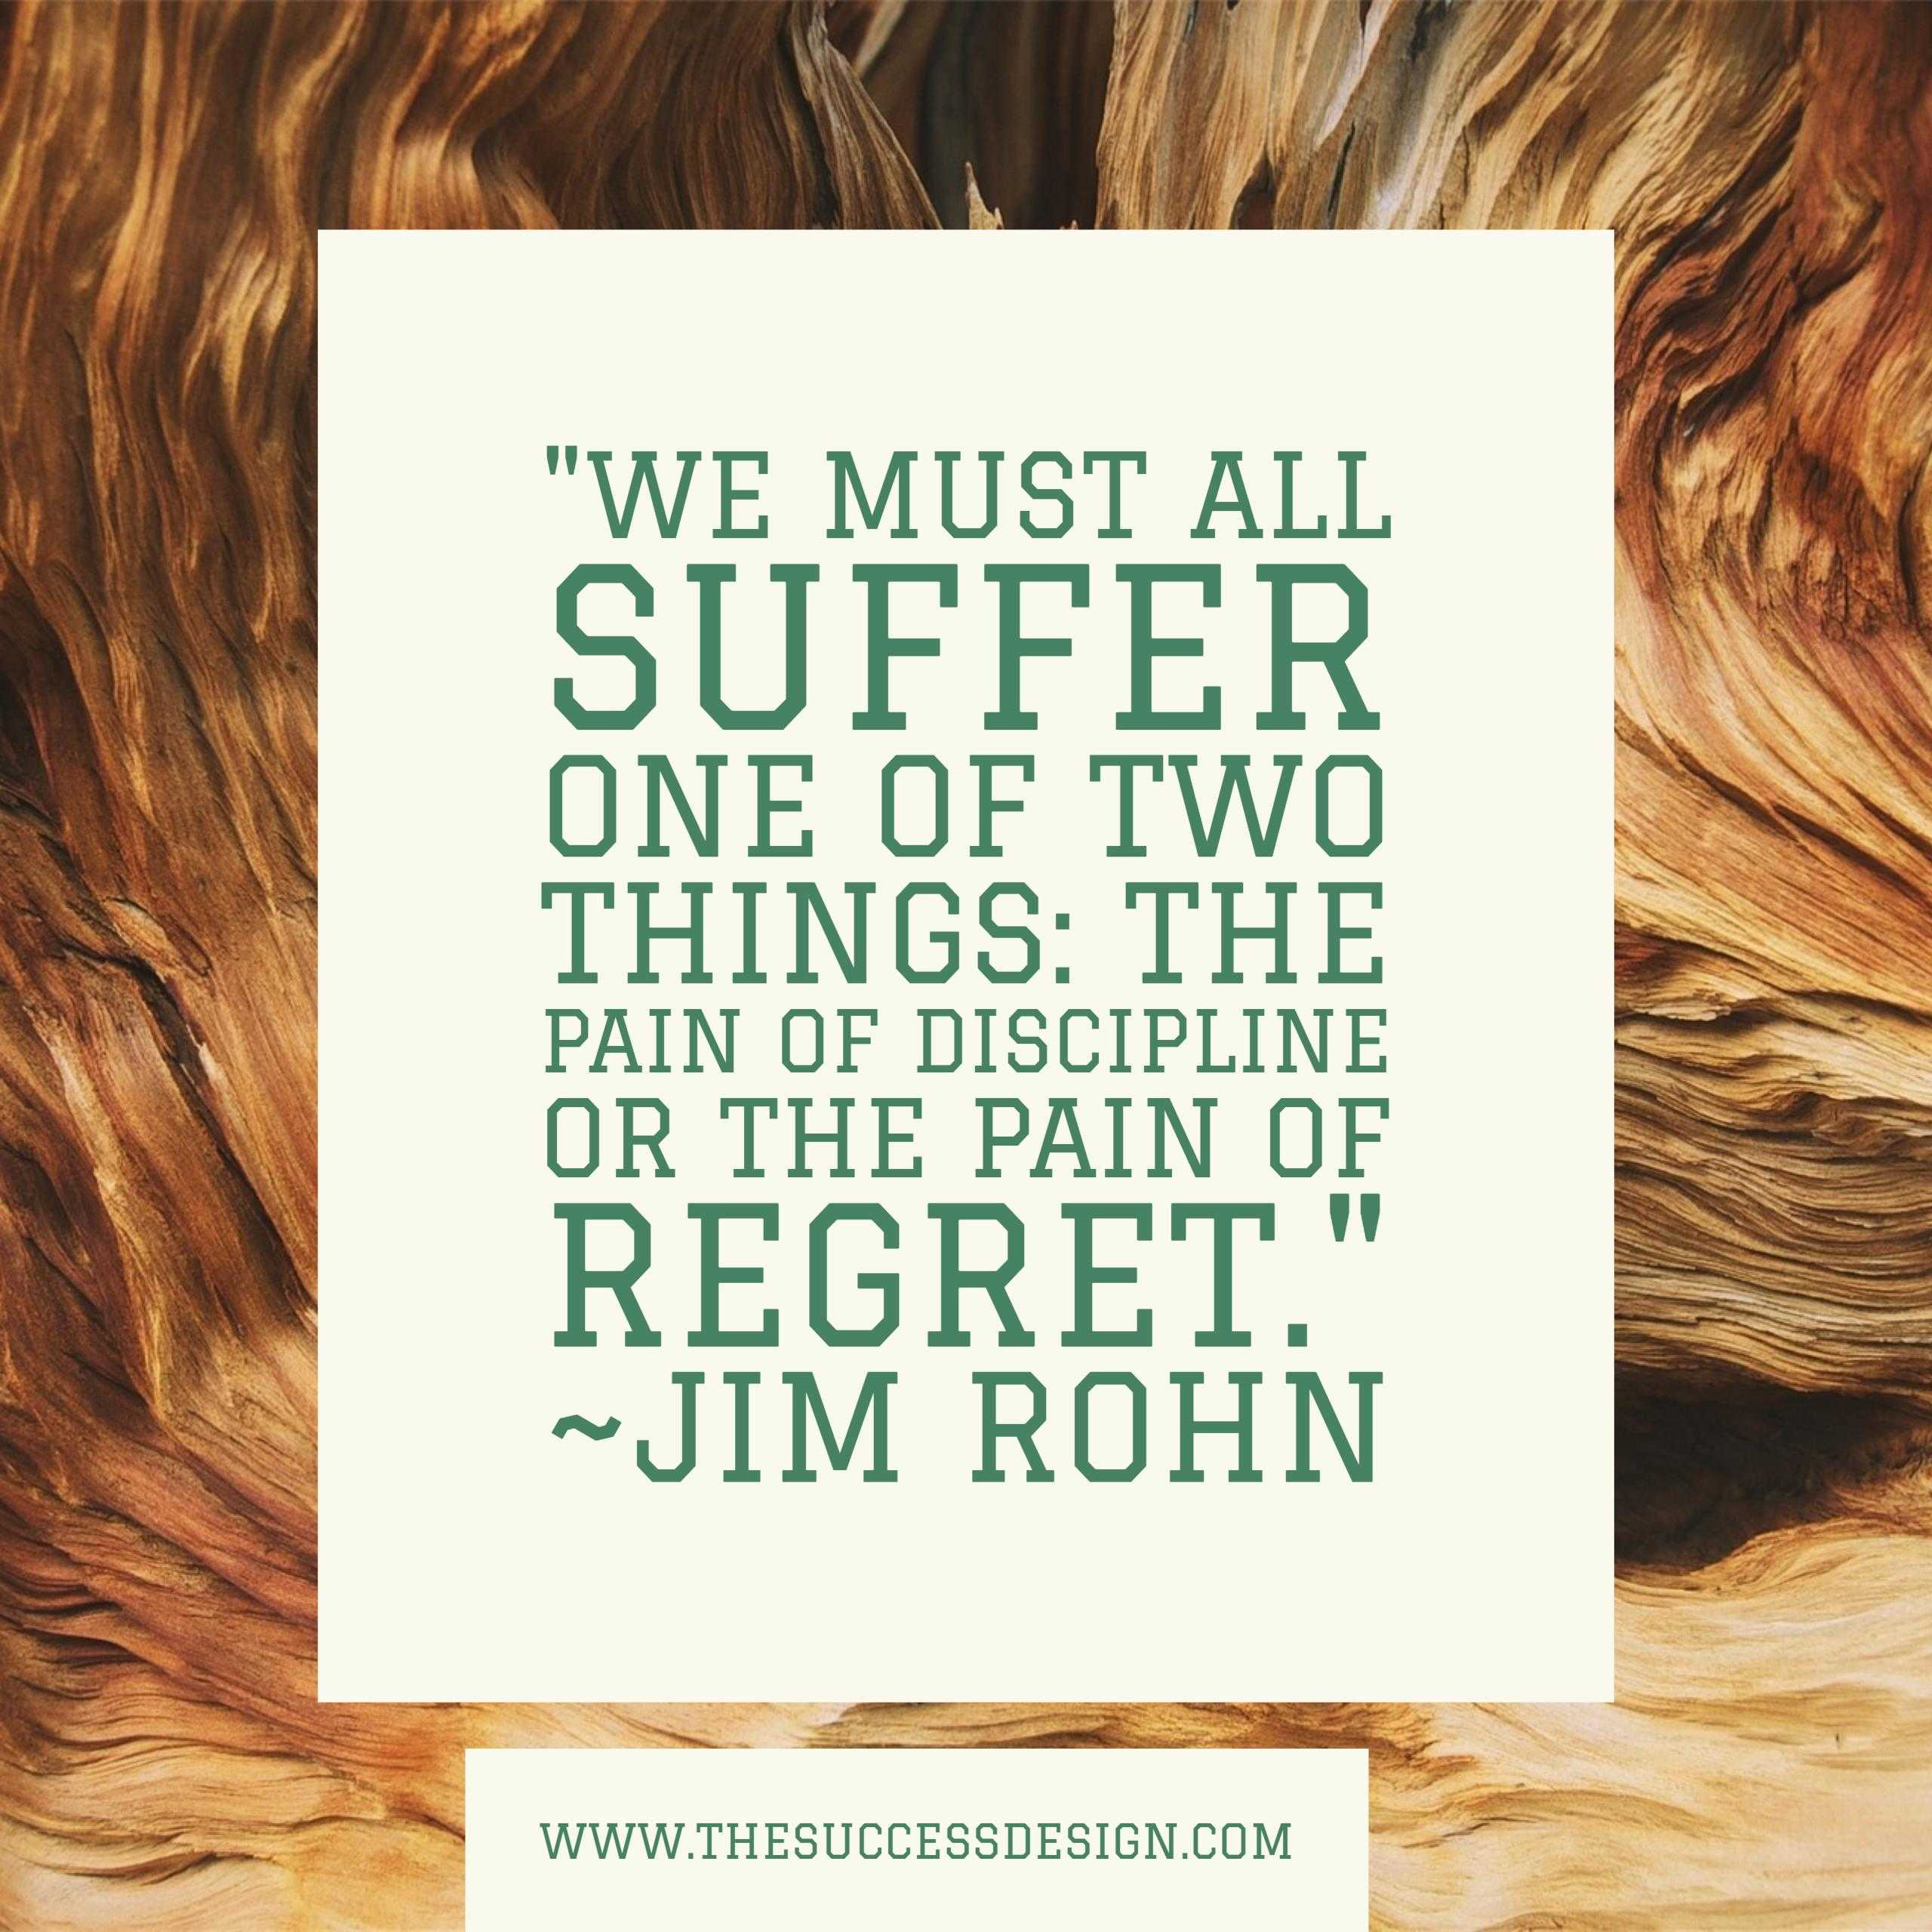 It's Your Choice: Discipline or Regret